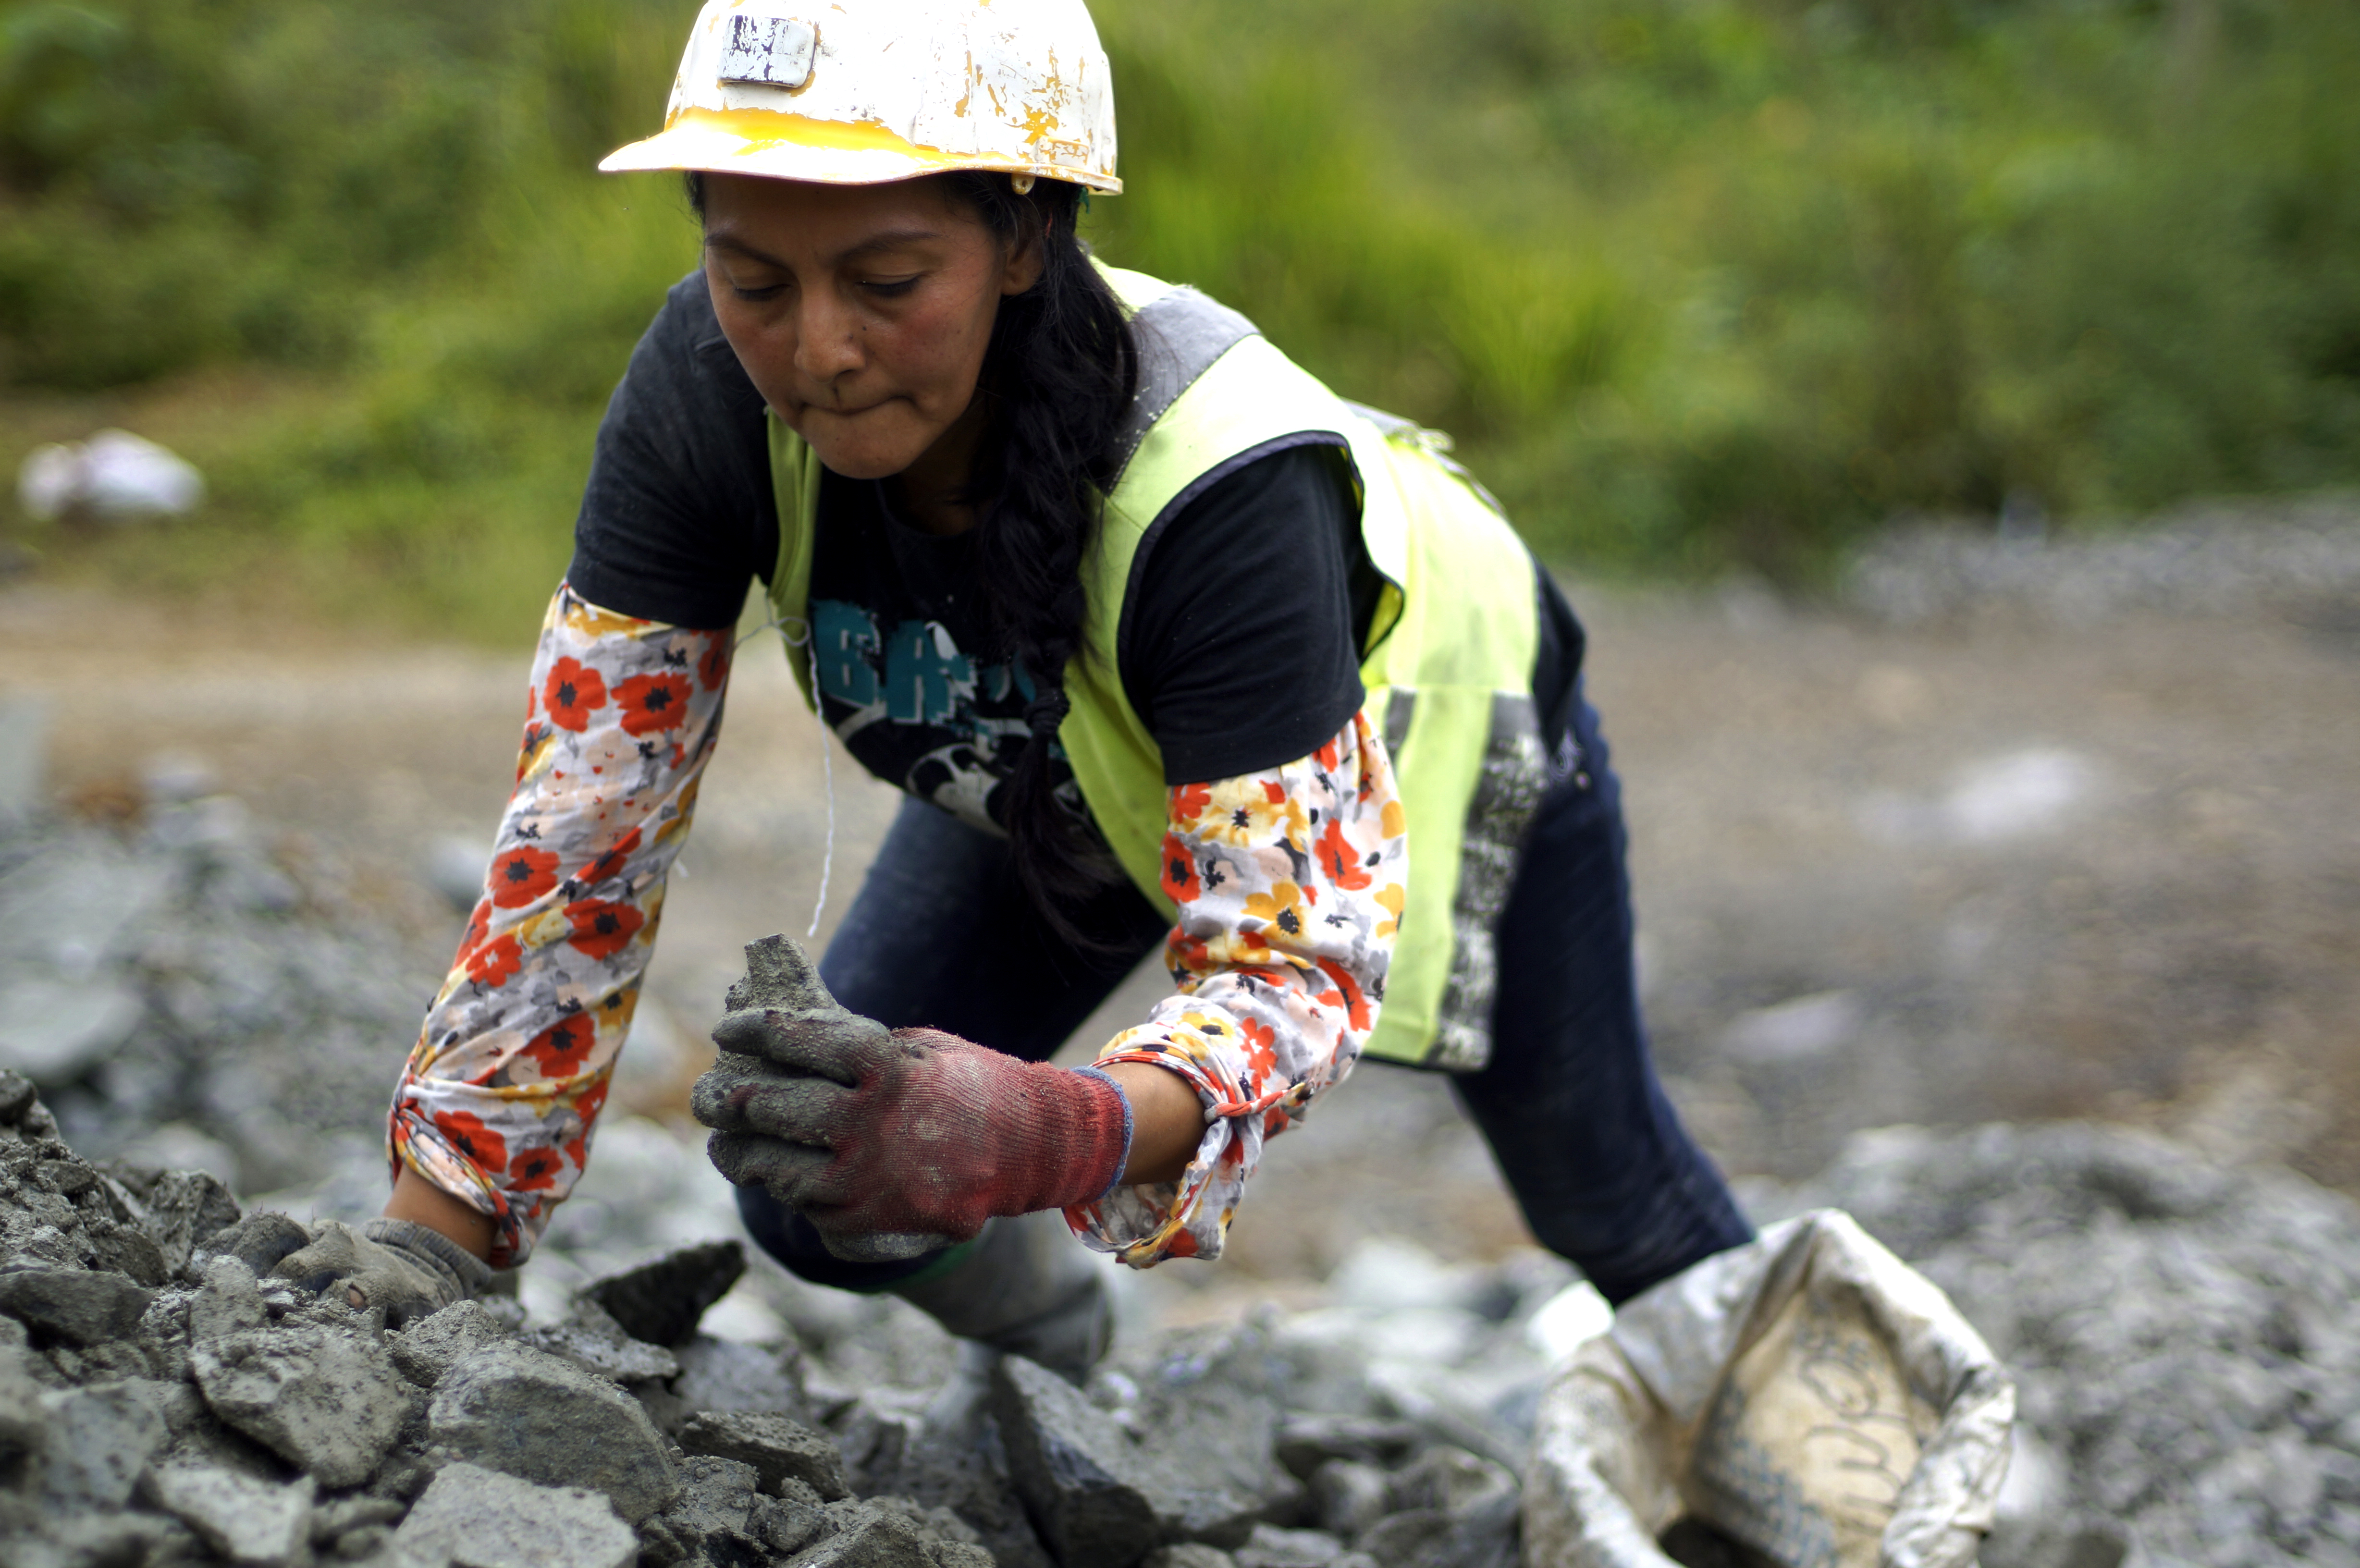 Woman miner in Ecuador sorting through discarded material